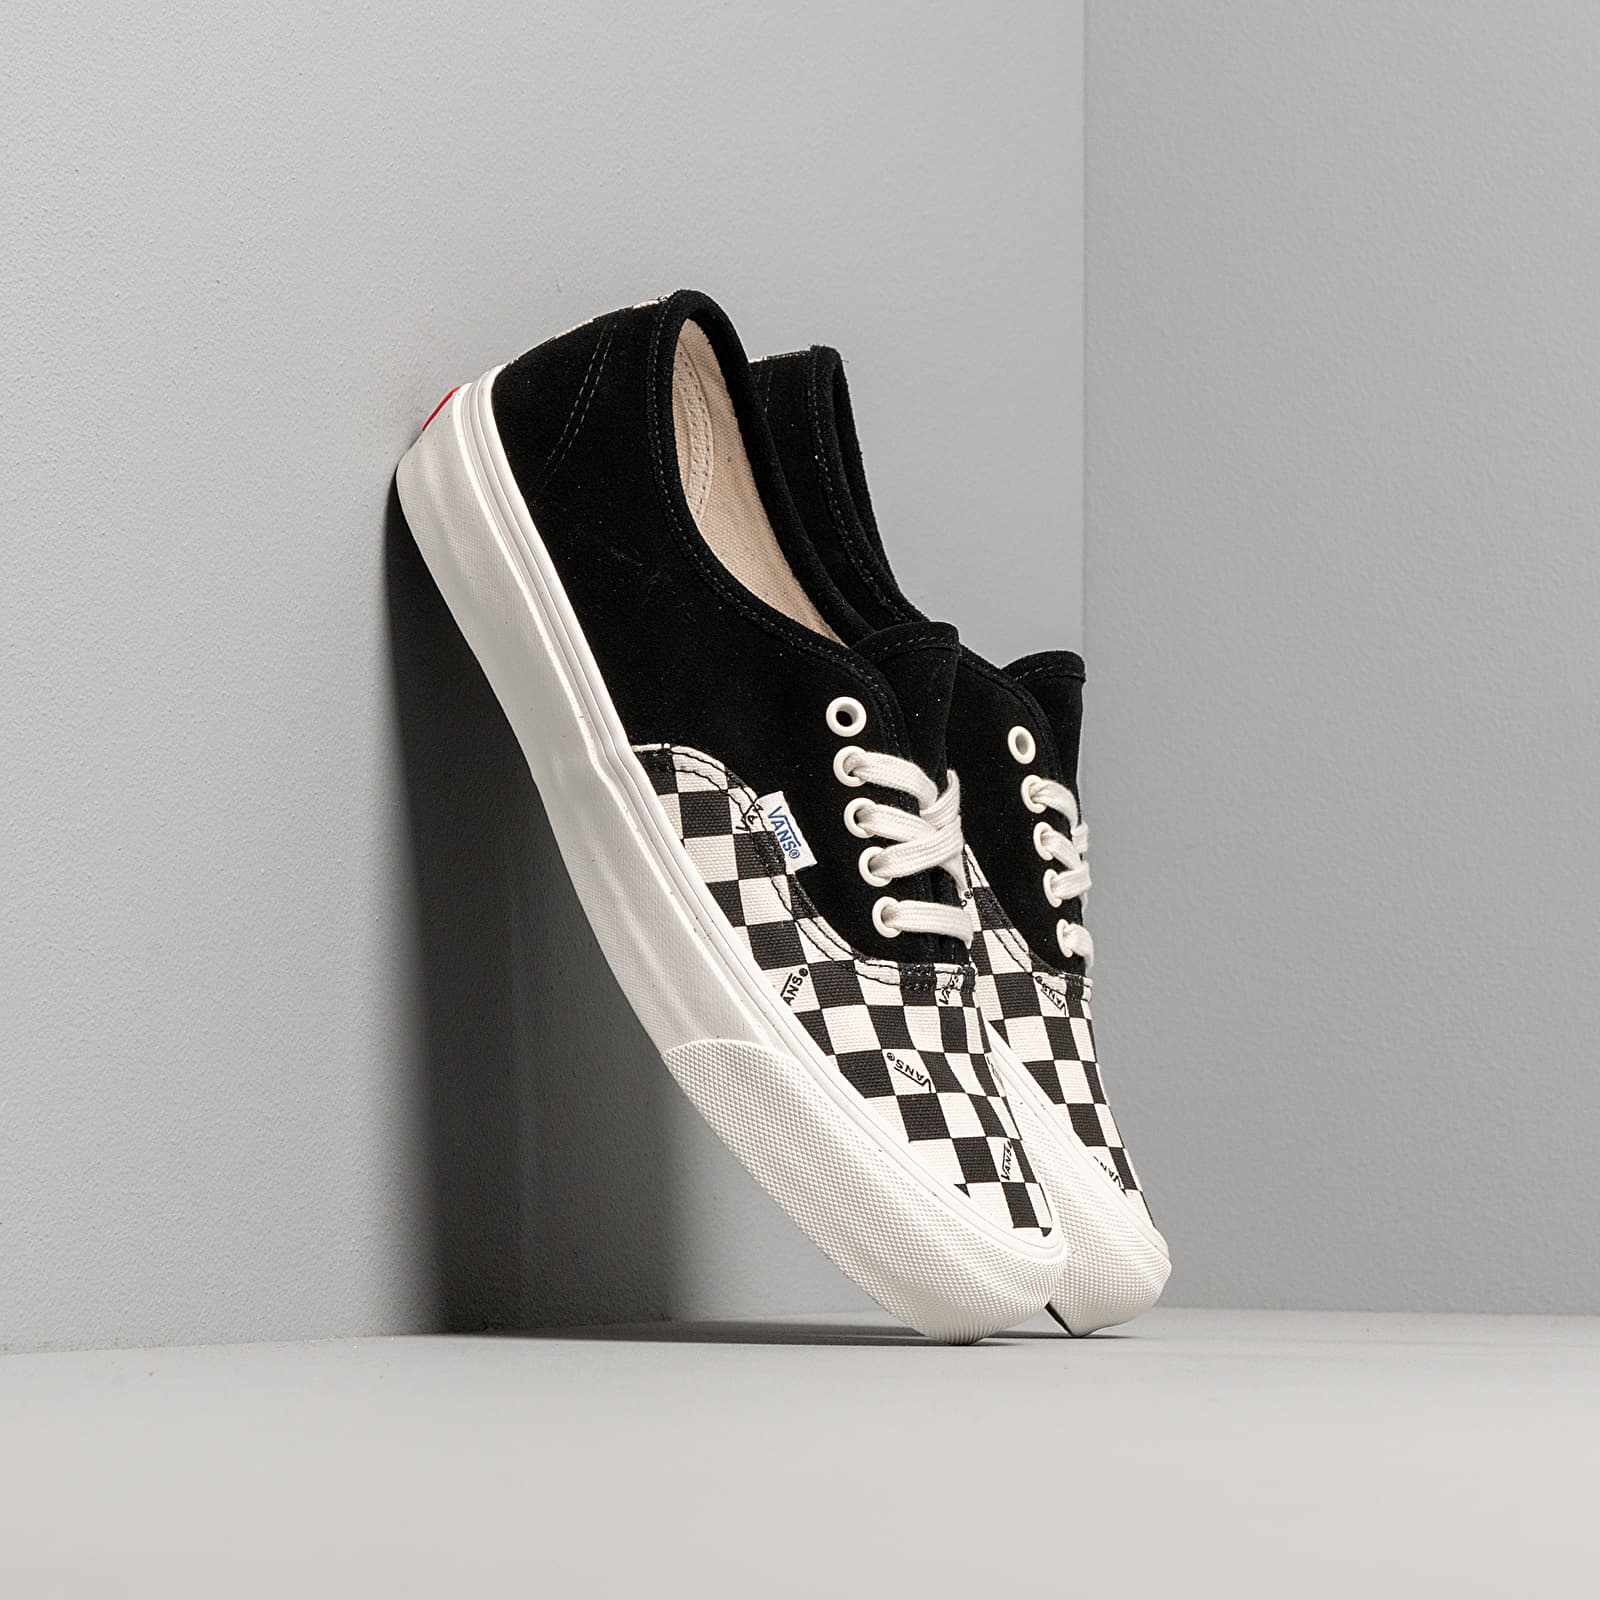 Zapatillas Hombre Vans OG Authentic LX (Suede/ Canvas) Black/ Checkerboard